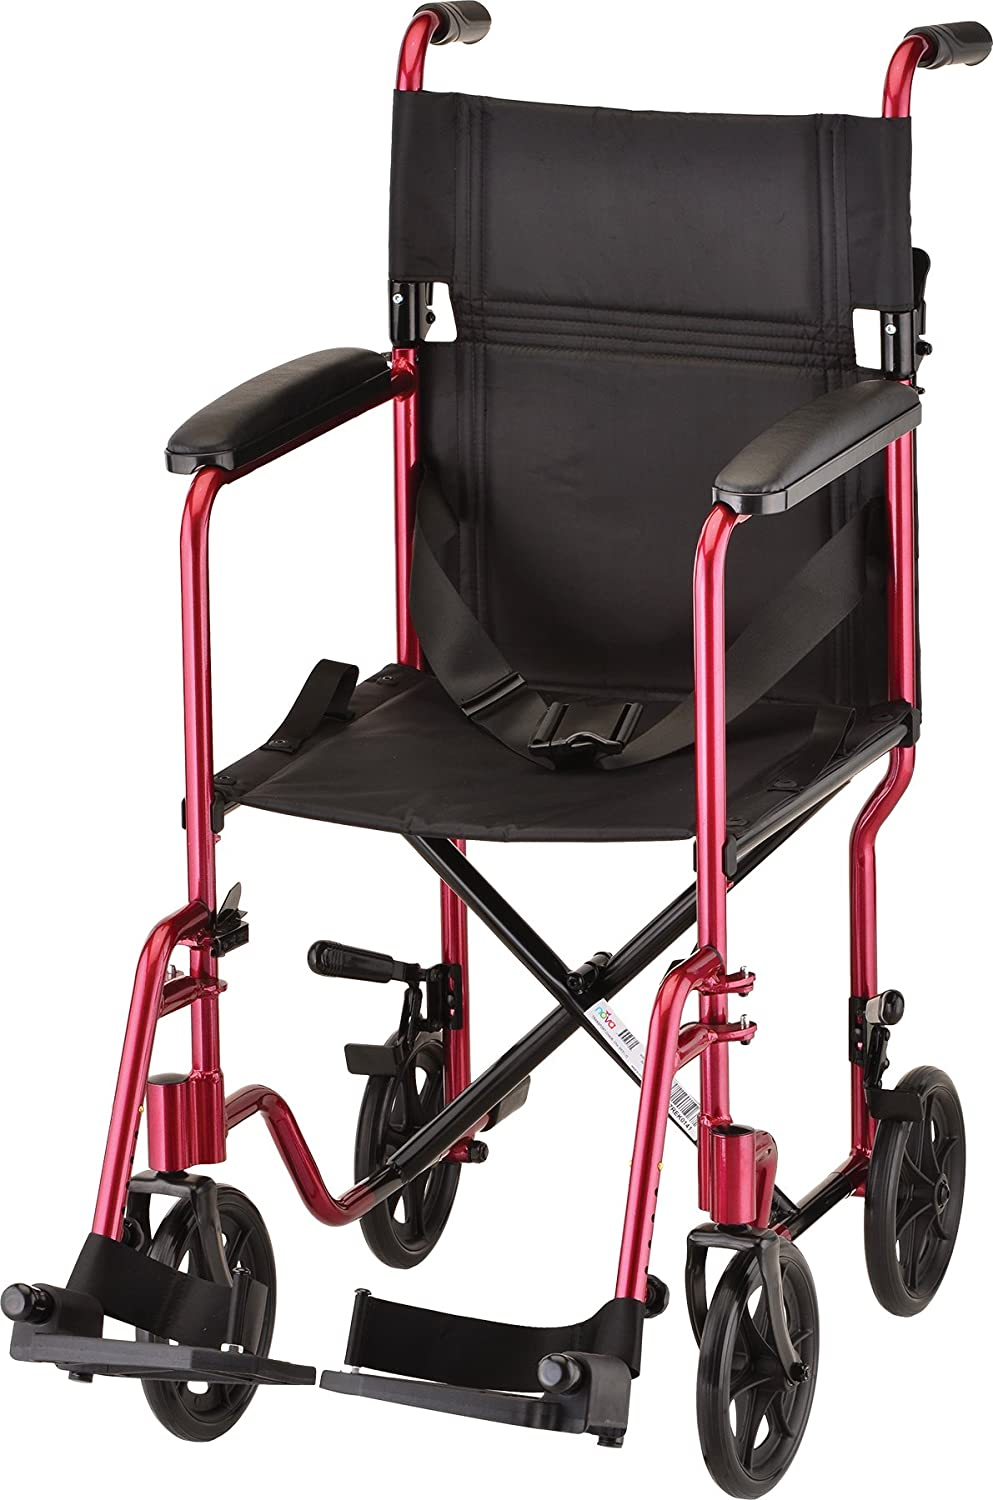 "NOVA Medical Products Lightweight 327 Transport Chair, Folds Compact for Car Trunks and Storage, More Narrow Frame, Great for Travel, Color Red, 17"": Health & Personal Care"